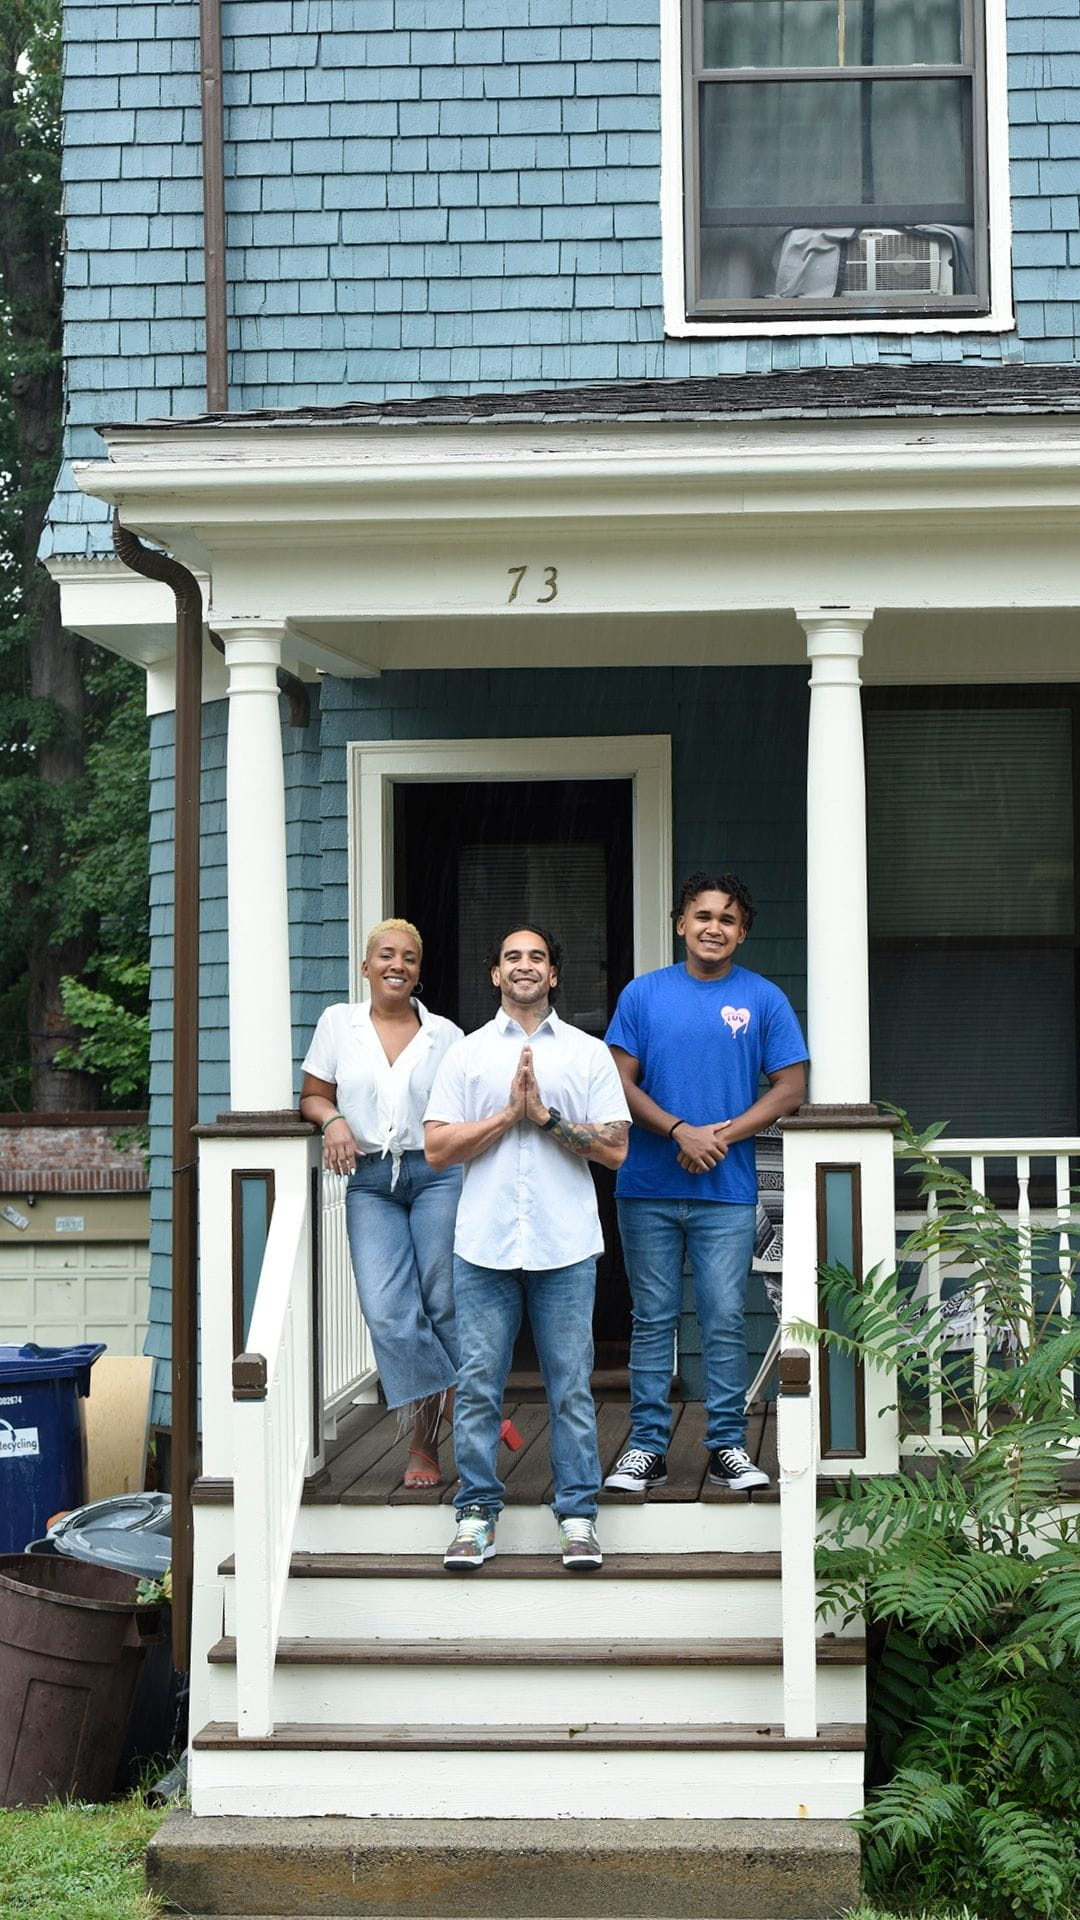 From left to right, Taheera, Mike and Christian Massey standing on the front porch steps of their teal house in Dorchester. The steps are brown and wooden with white molding. Taheera and Mike are wearing jeans a white t-shirts. Christian is wearing a blue T shirt. Green grass a leafy shrubs are in front of/to the right of the steps.